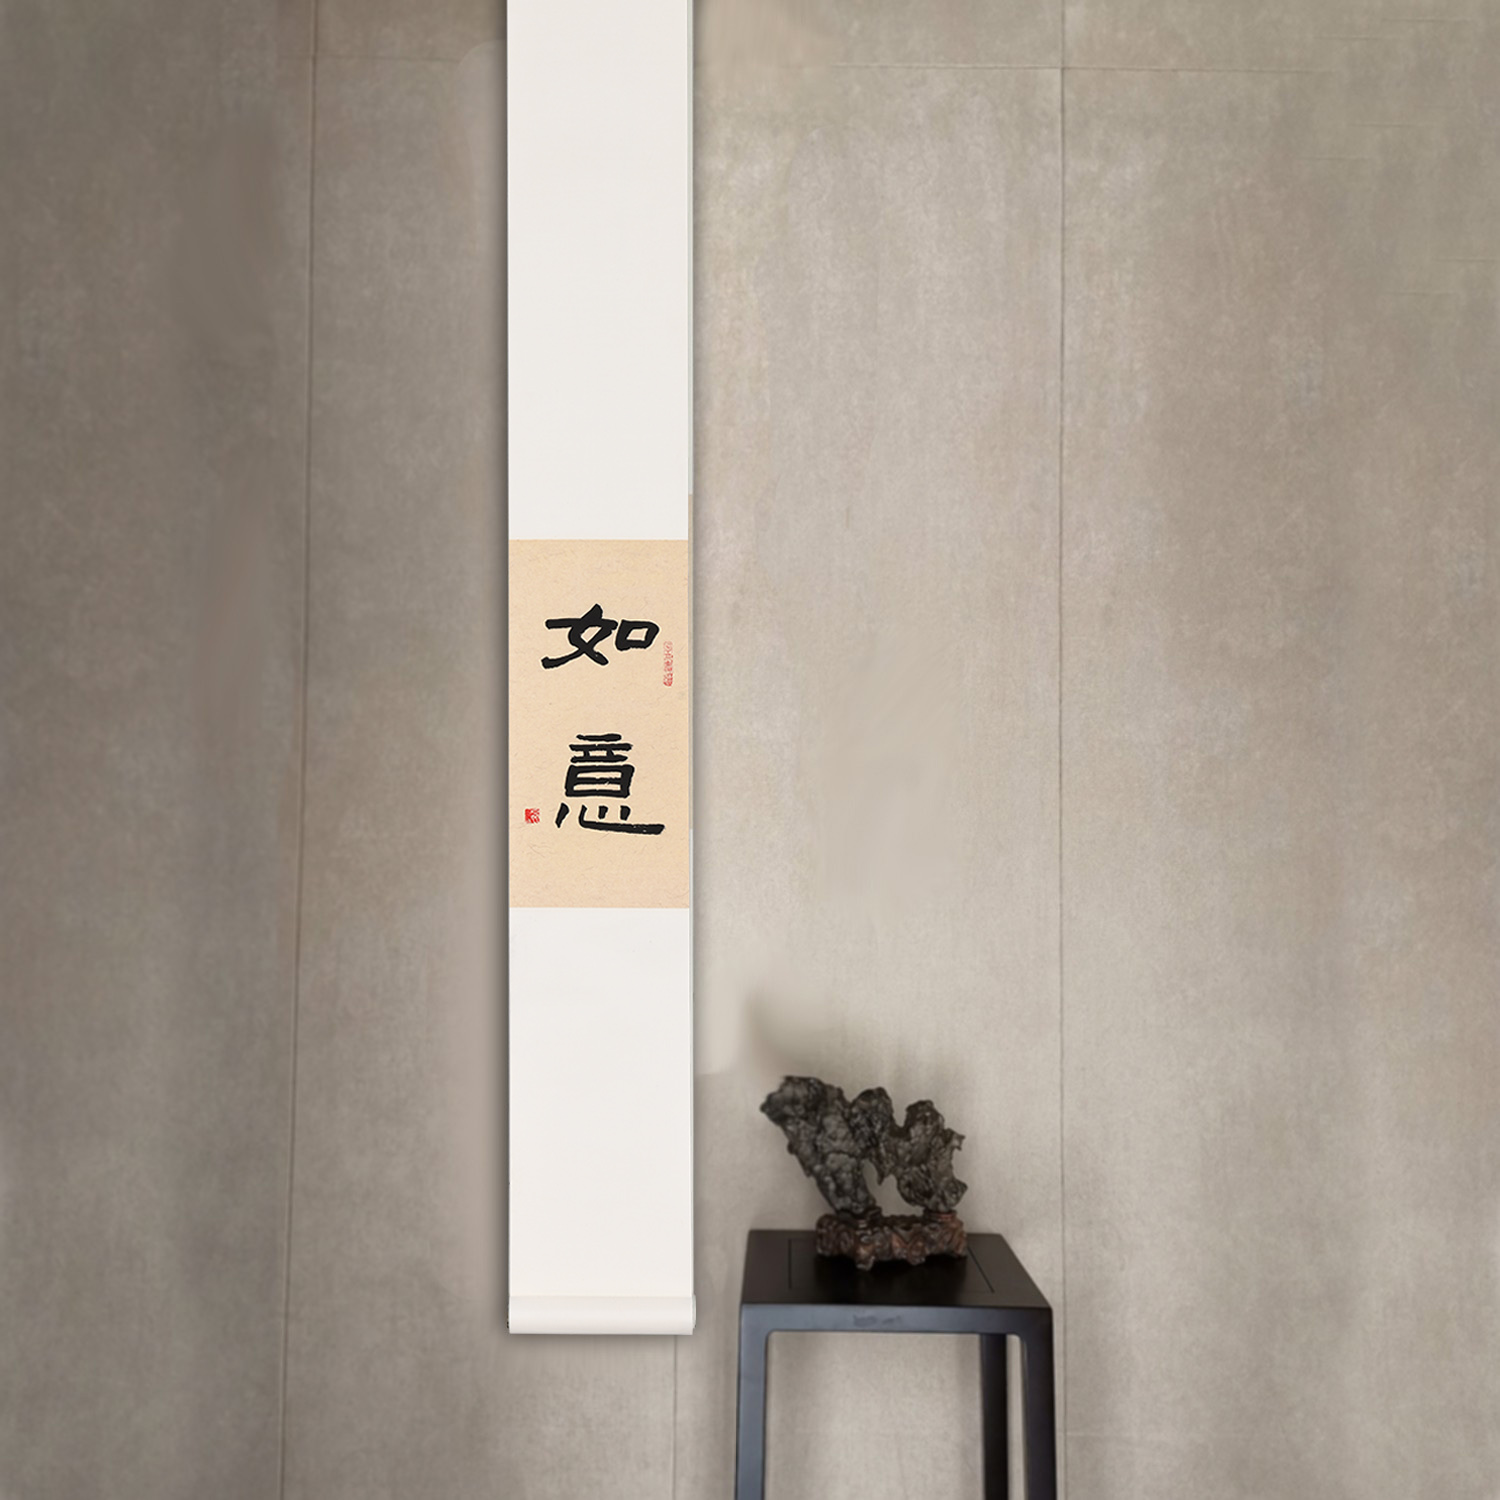 Insect two calligraphy and painting New Chinese Zen calligraphy and painting porch song style mounting decorative painting Japanese mounting scroll hanging painting